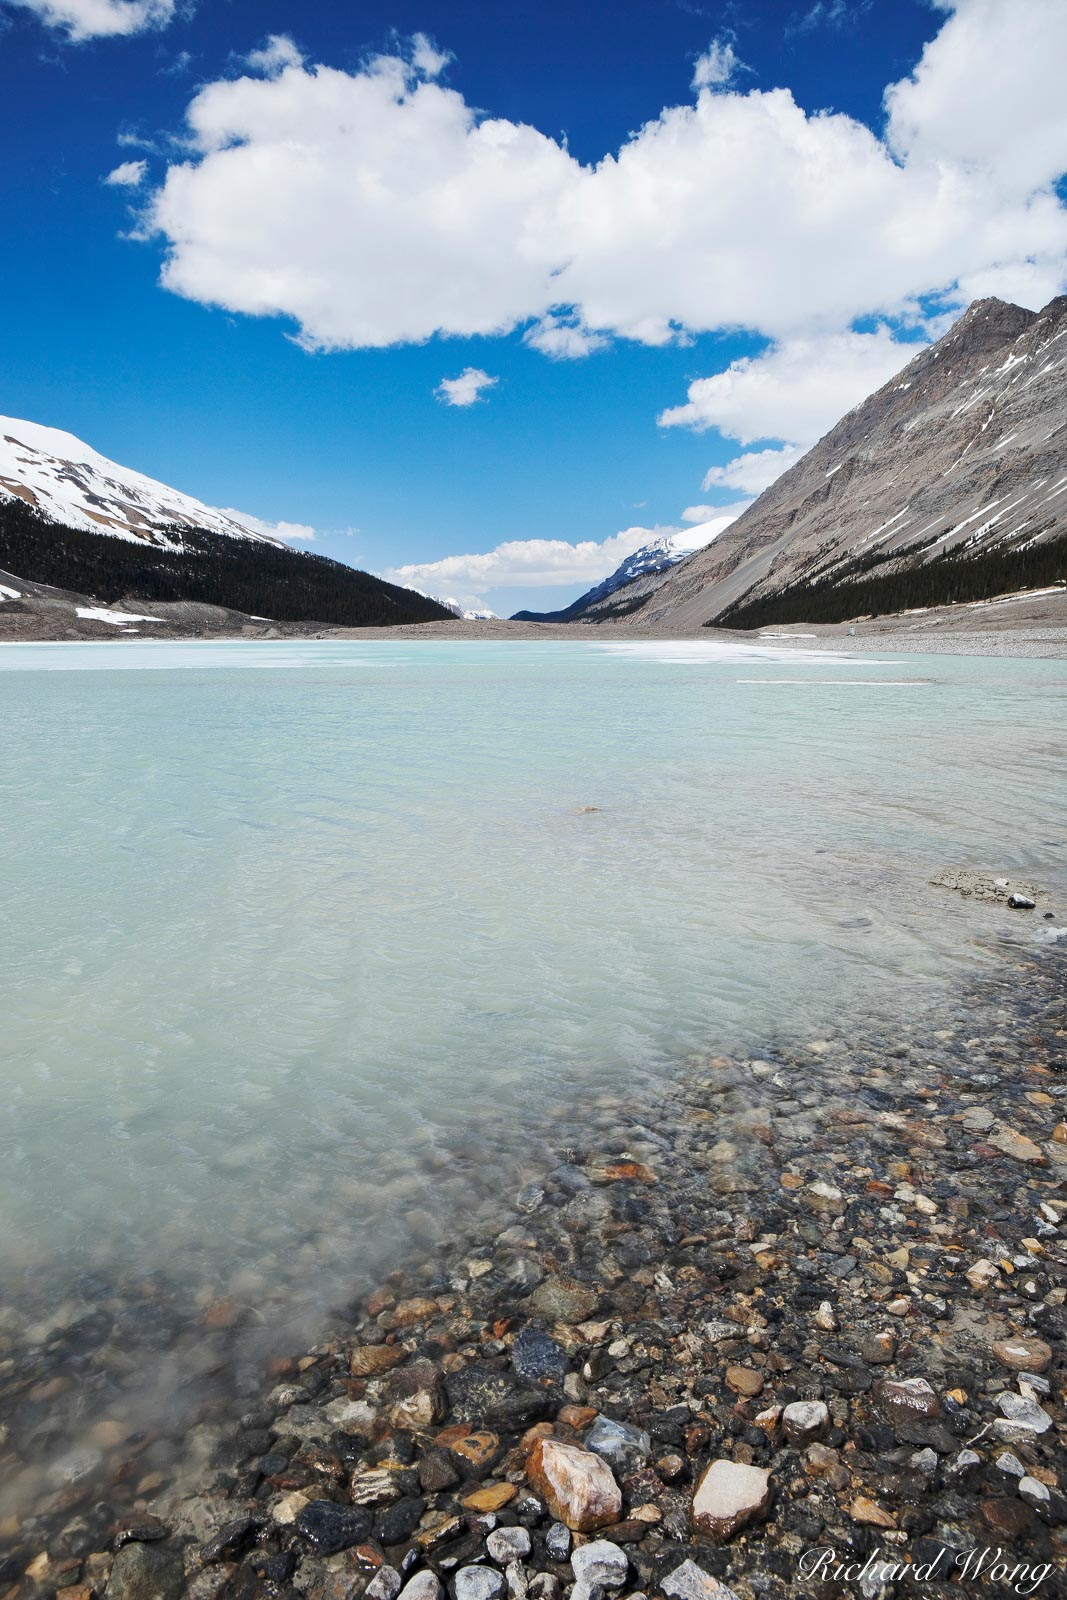 alberta, athabasca glacier, canada, canadian rockies, clouds, color image, columbia icefields, glacial lake, icefields parkway, jasper national park, lakes, landscape, landscape photography, nature, n, photo